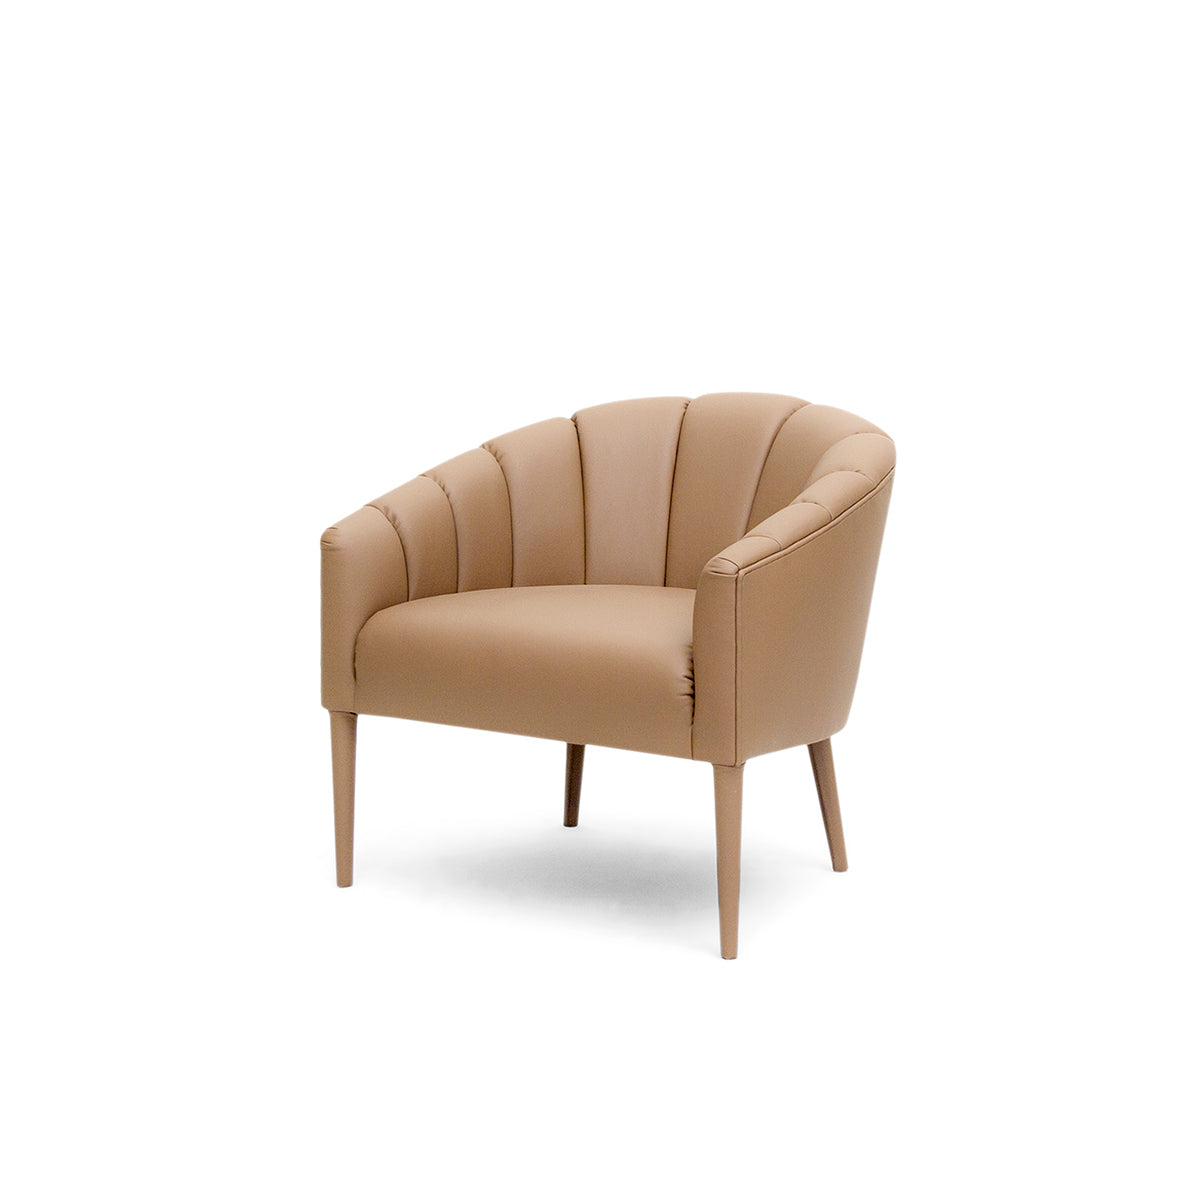 Walter Tan Leather Armchair